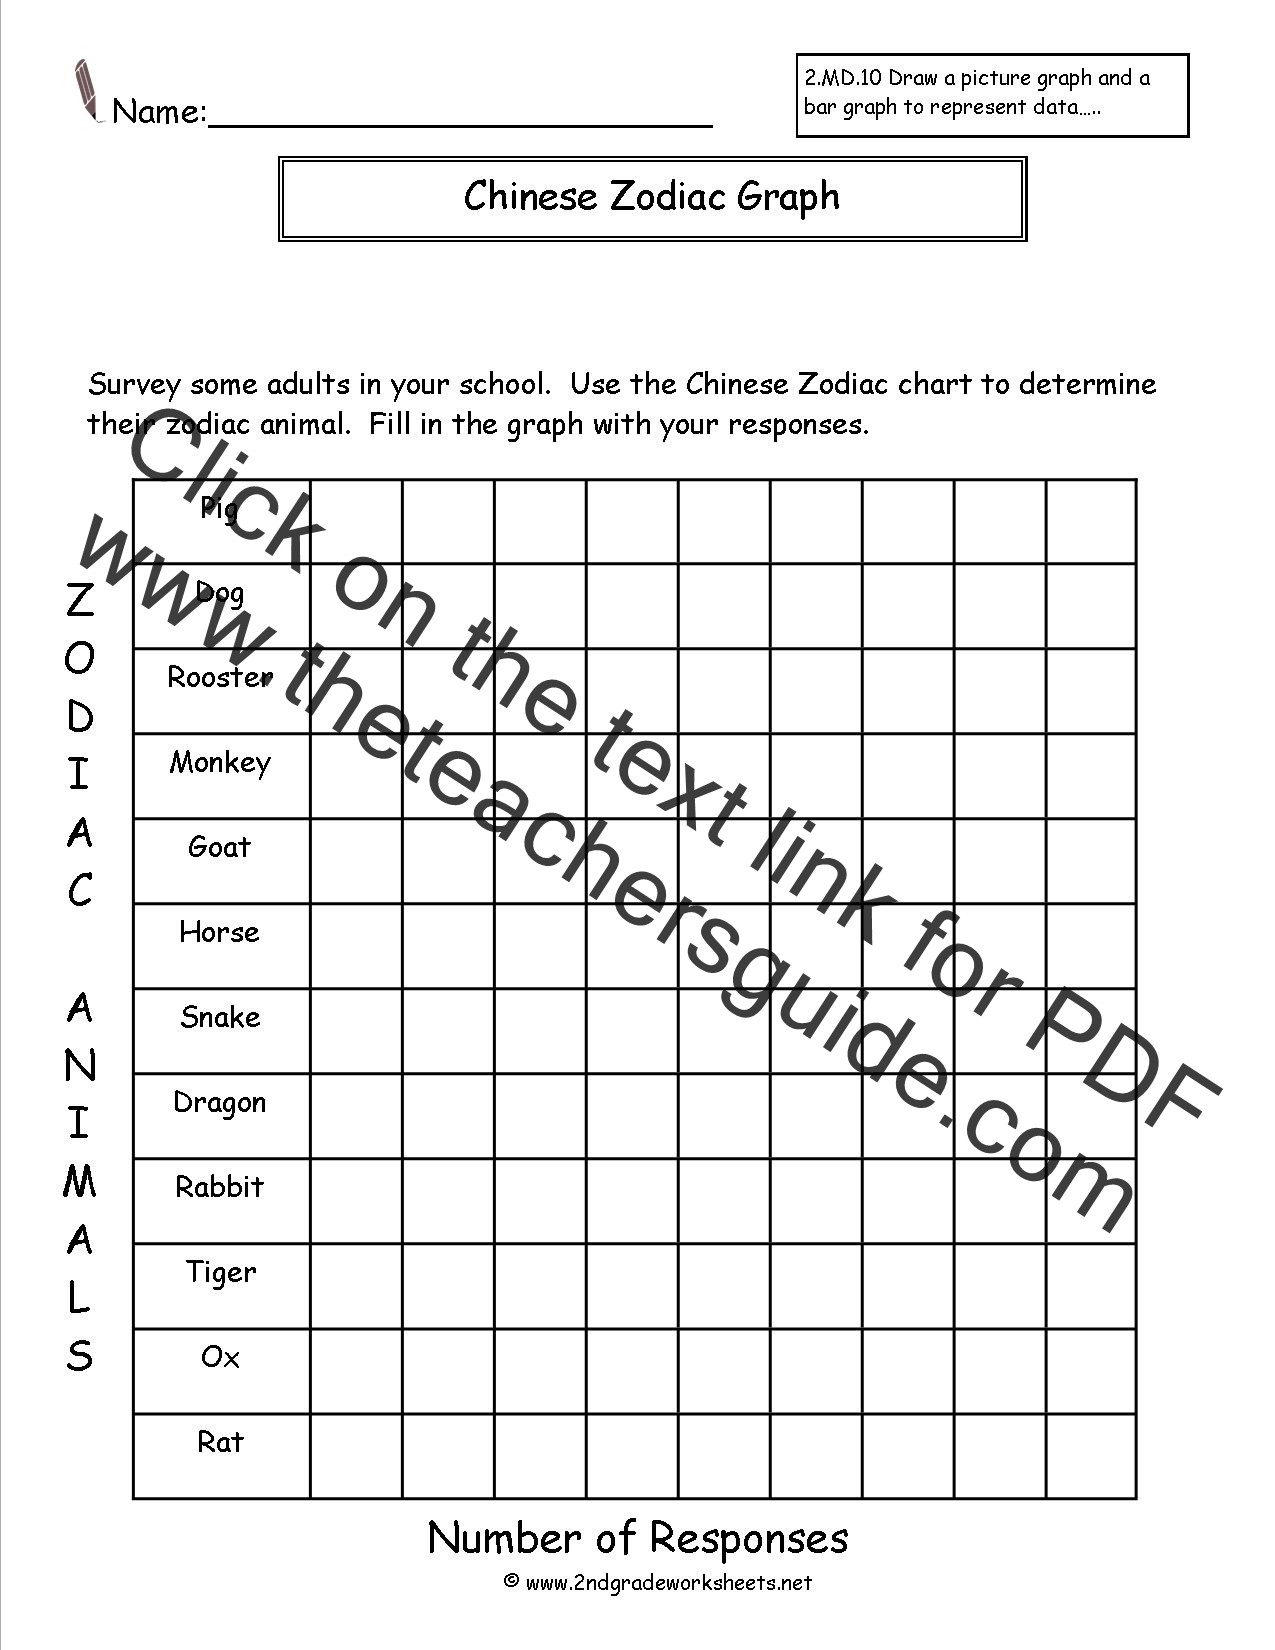 Reading Charts and Graphs Worksheets Reading Charts and Graphs Worksheets Free Trinity